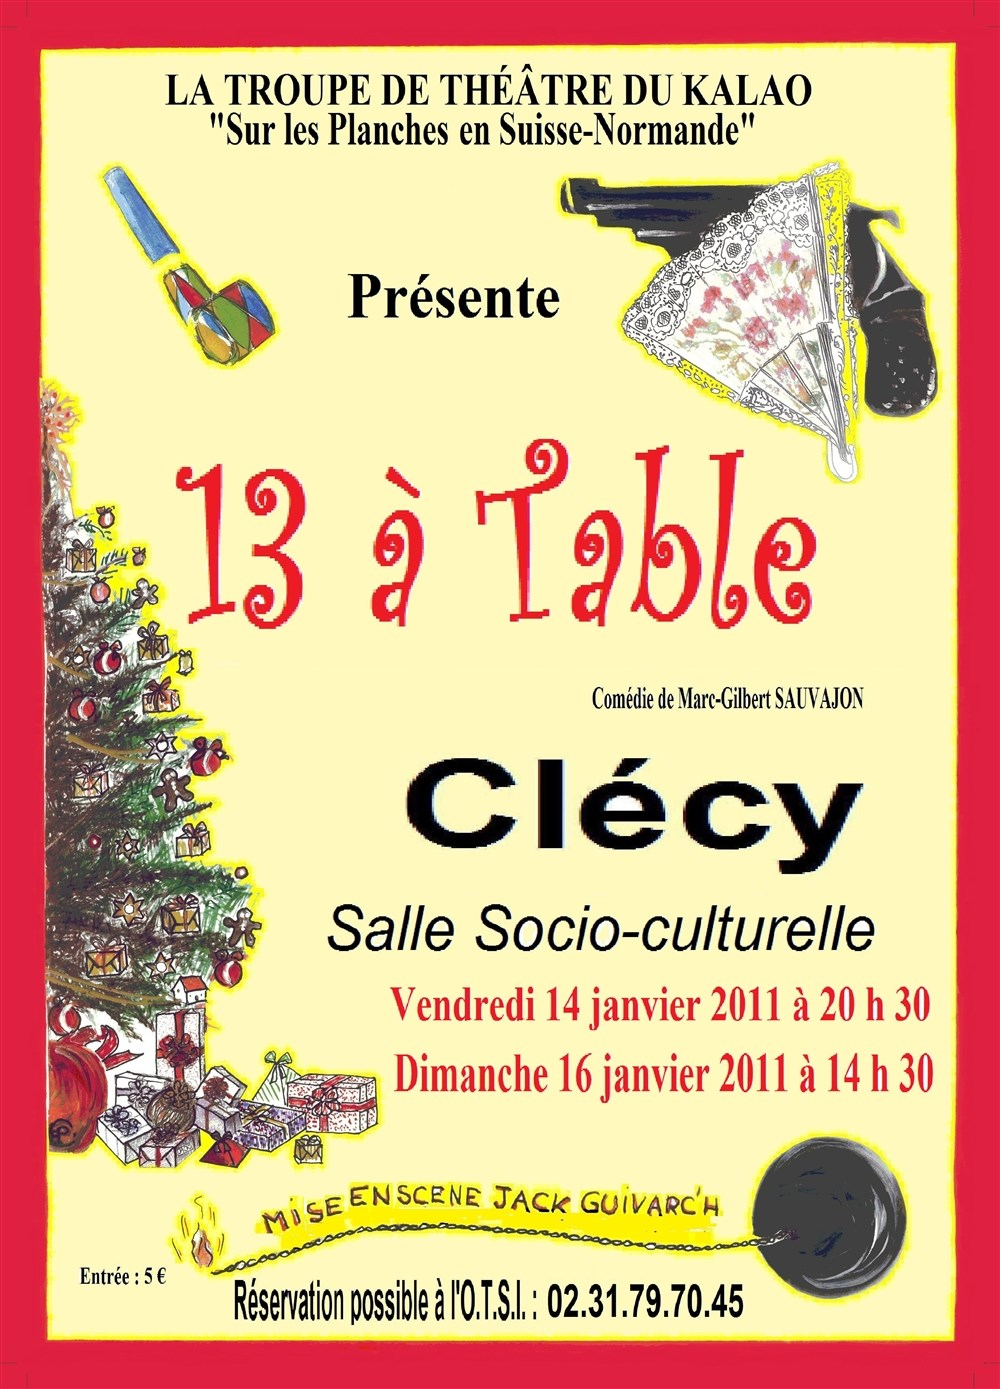 Spectacle th tre cl cy 14570 for 13 a table theatre